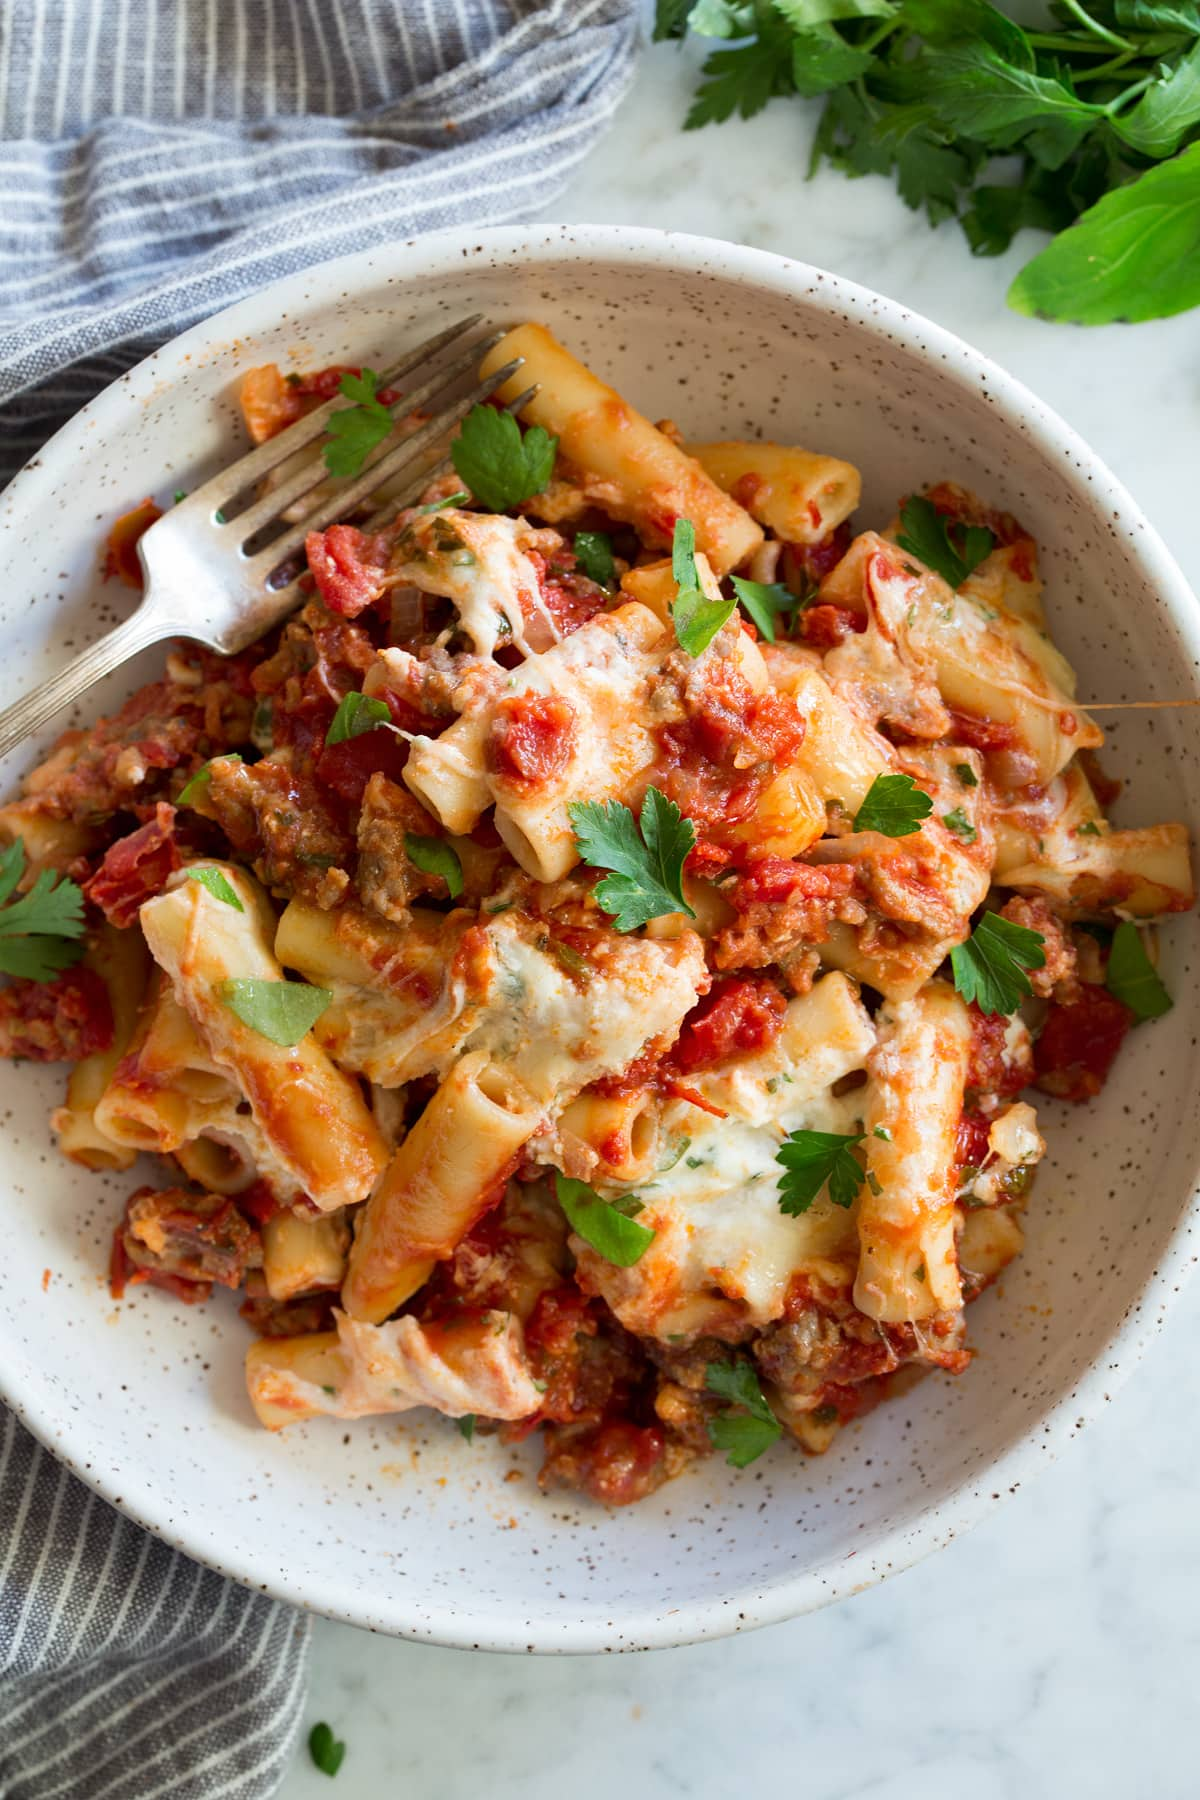 Bowl of baked ziti including ziti pasta, sausage, marinara sauce, three types of Italian cheese and fresh herbs.